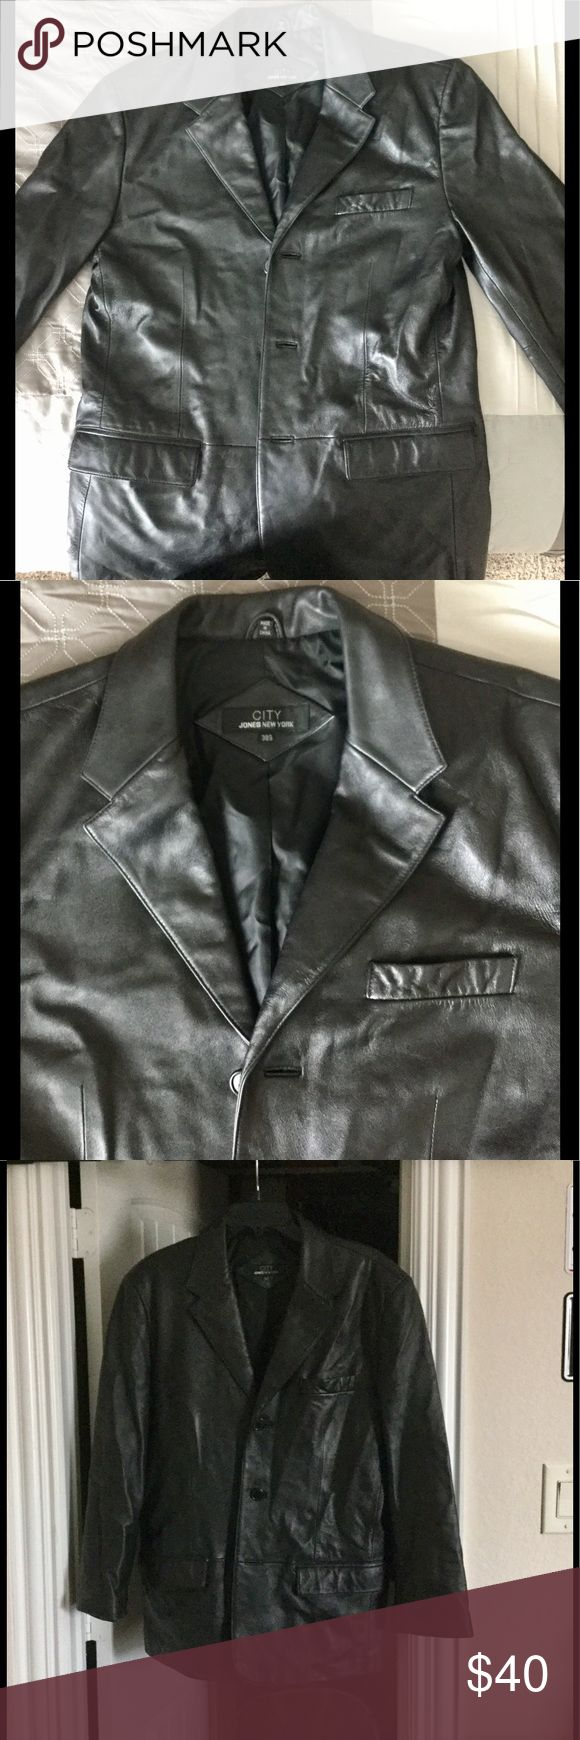 Men's Leather Blazer Jones New York Mens leather blazer- fits for a size medium. High Quality Leather. Jones New York Jackets & Coats